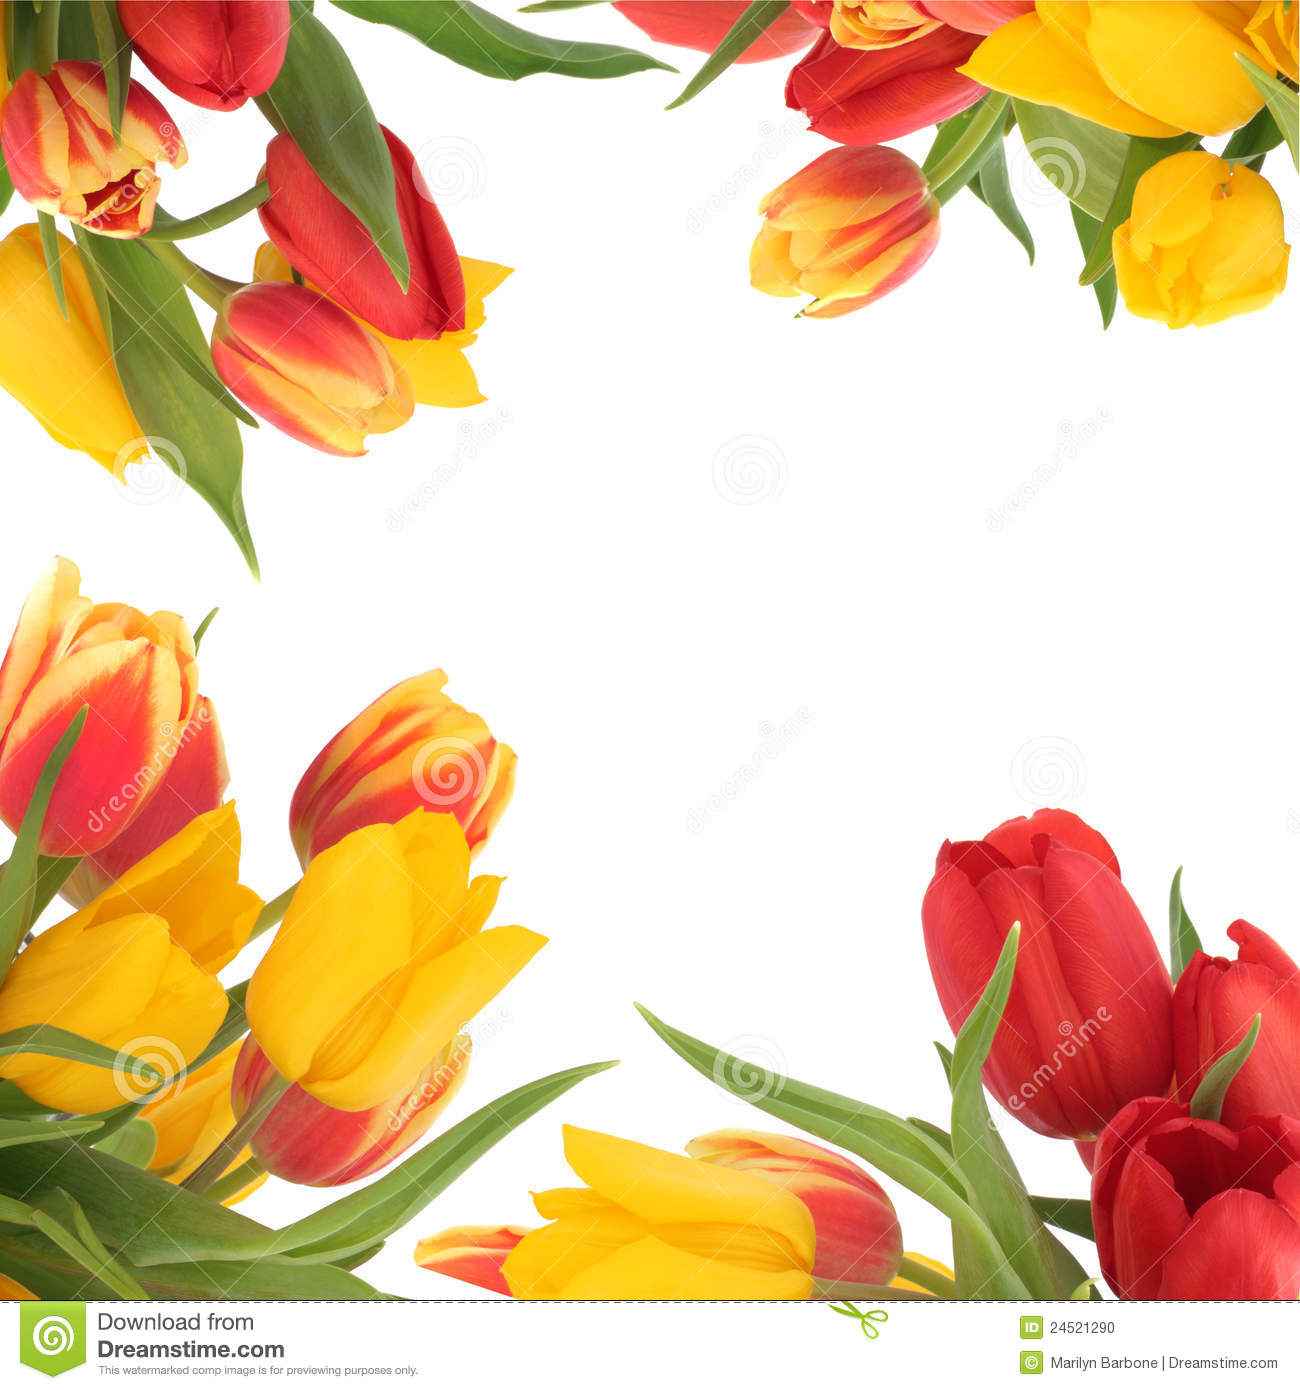 Tulip Flower Border Stock Photo - Image: 24521290